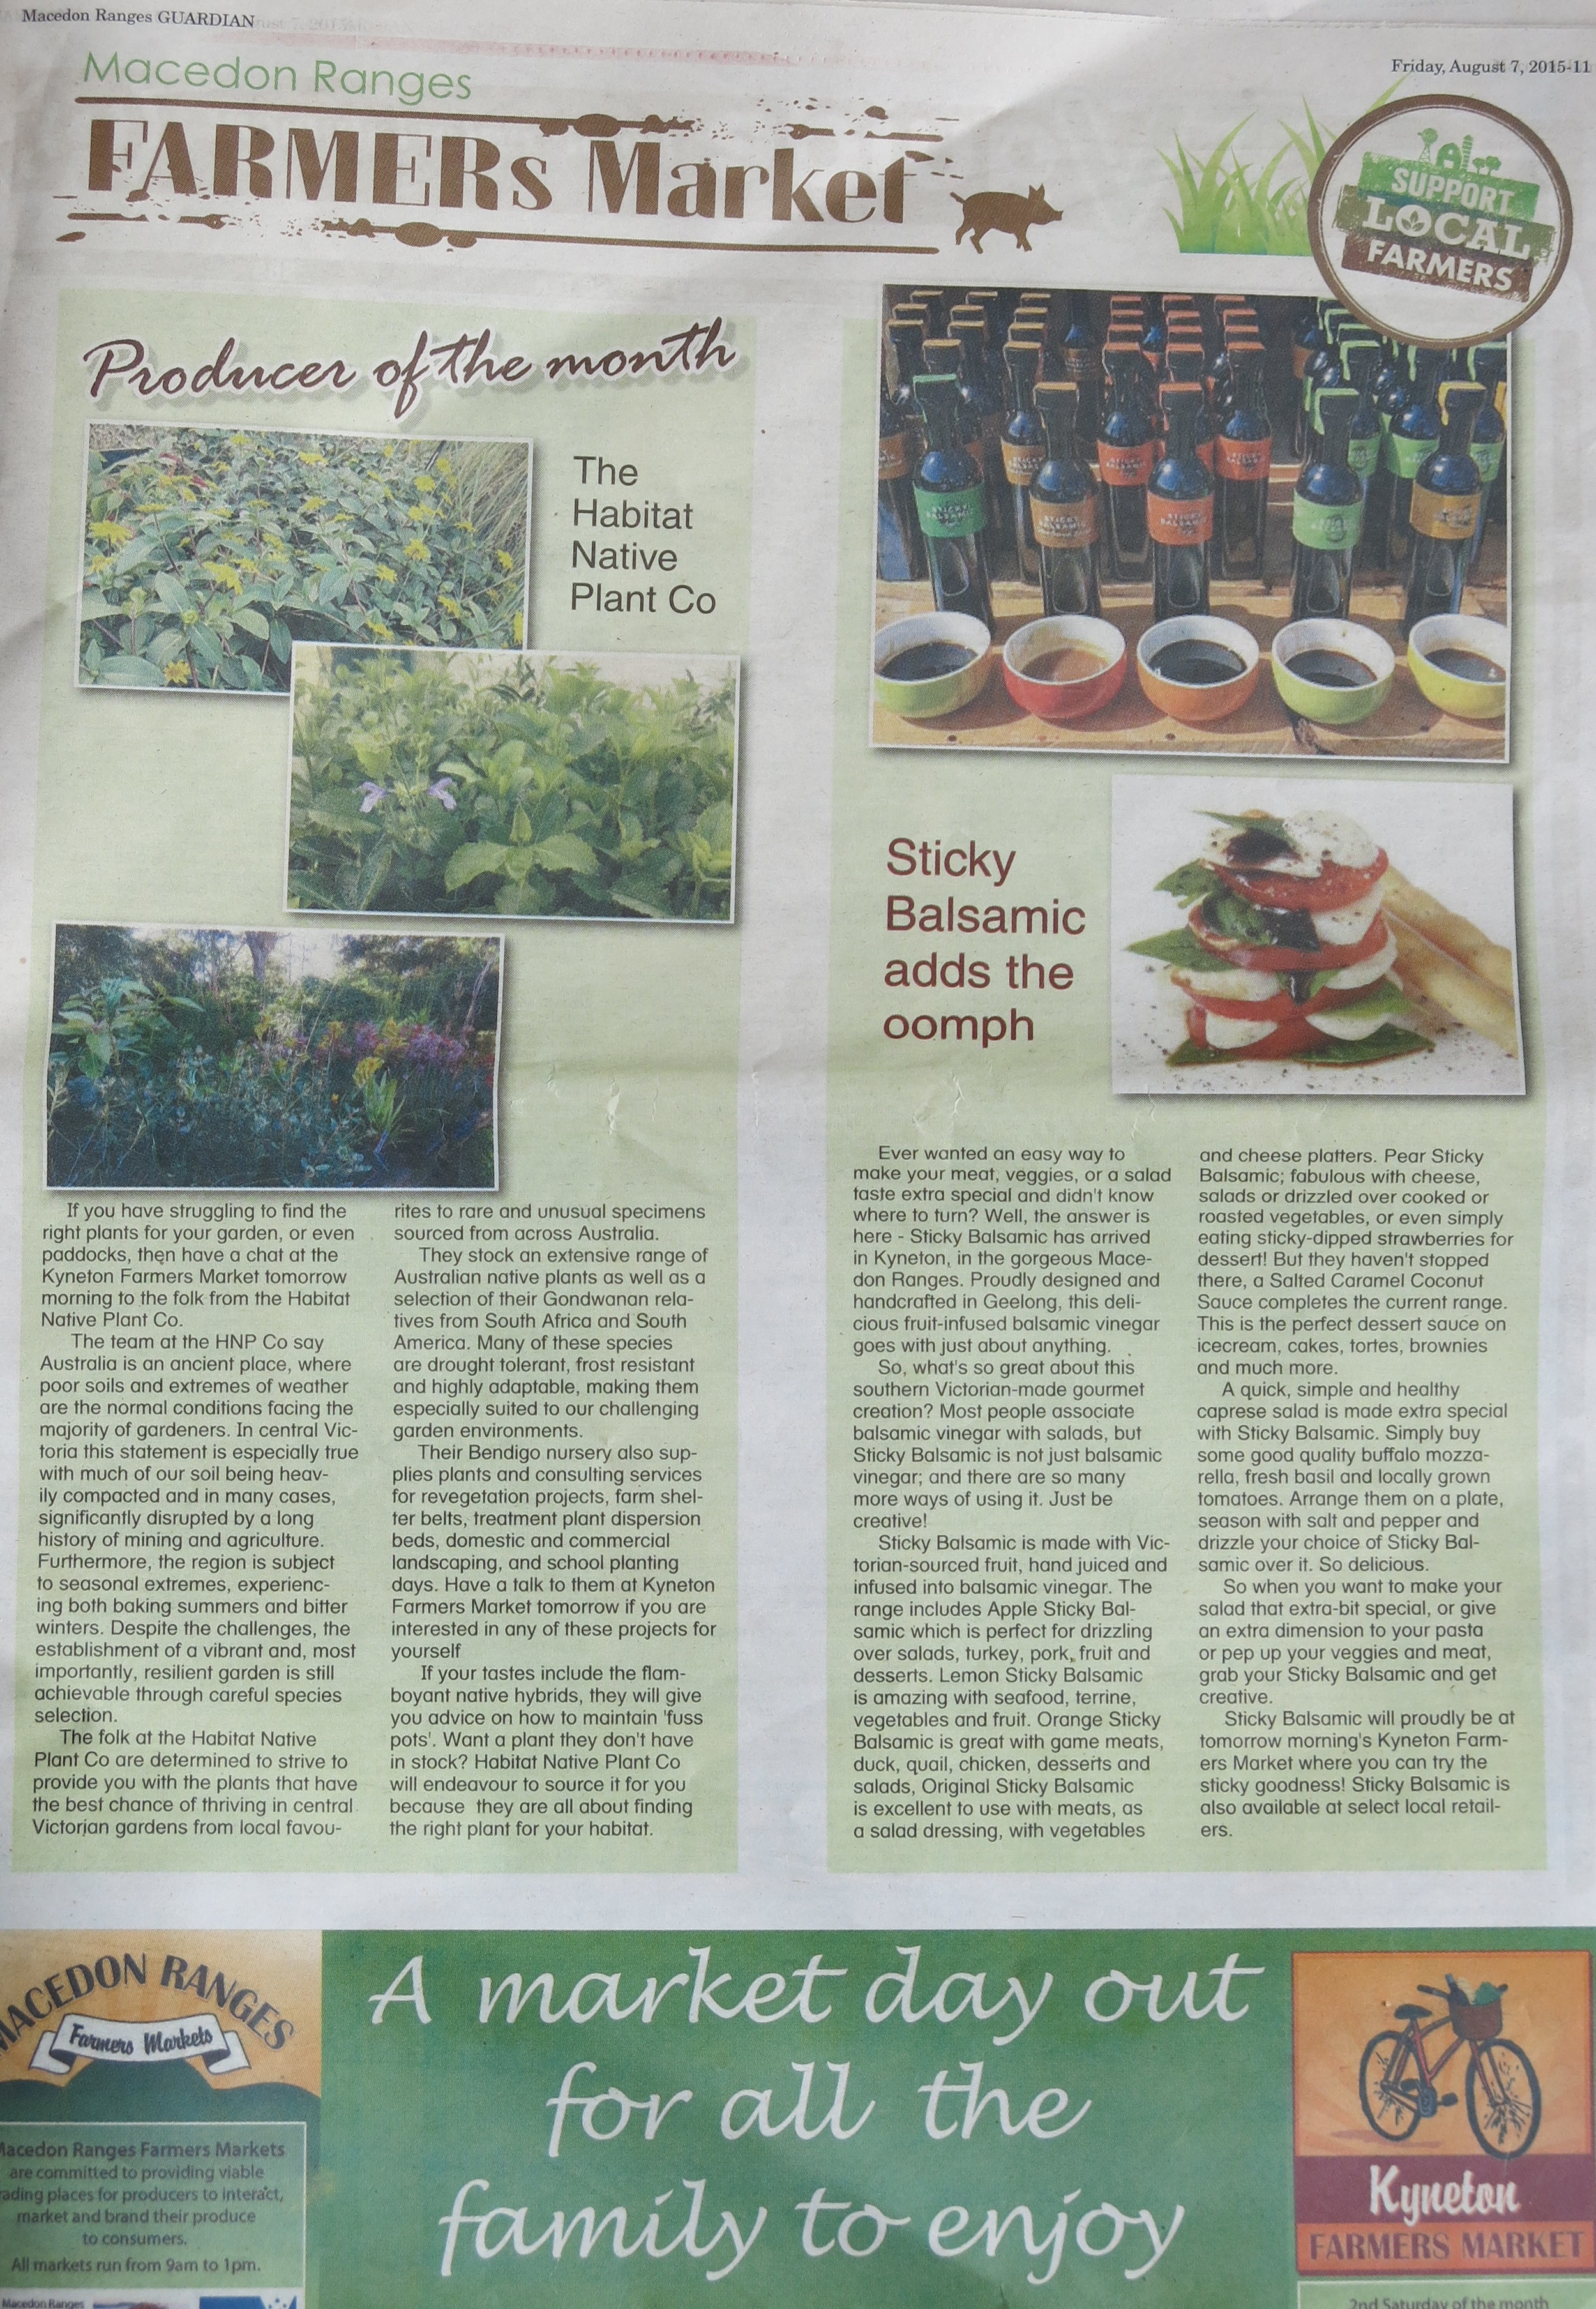 Sticky Balsamic in the Macedon Rangers Farmers Market Newspaper